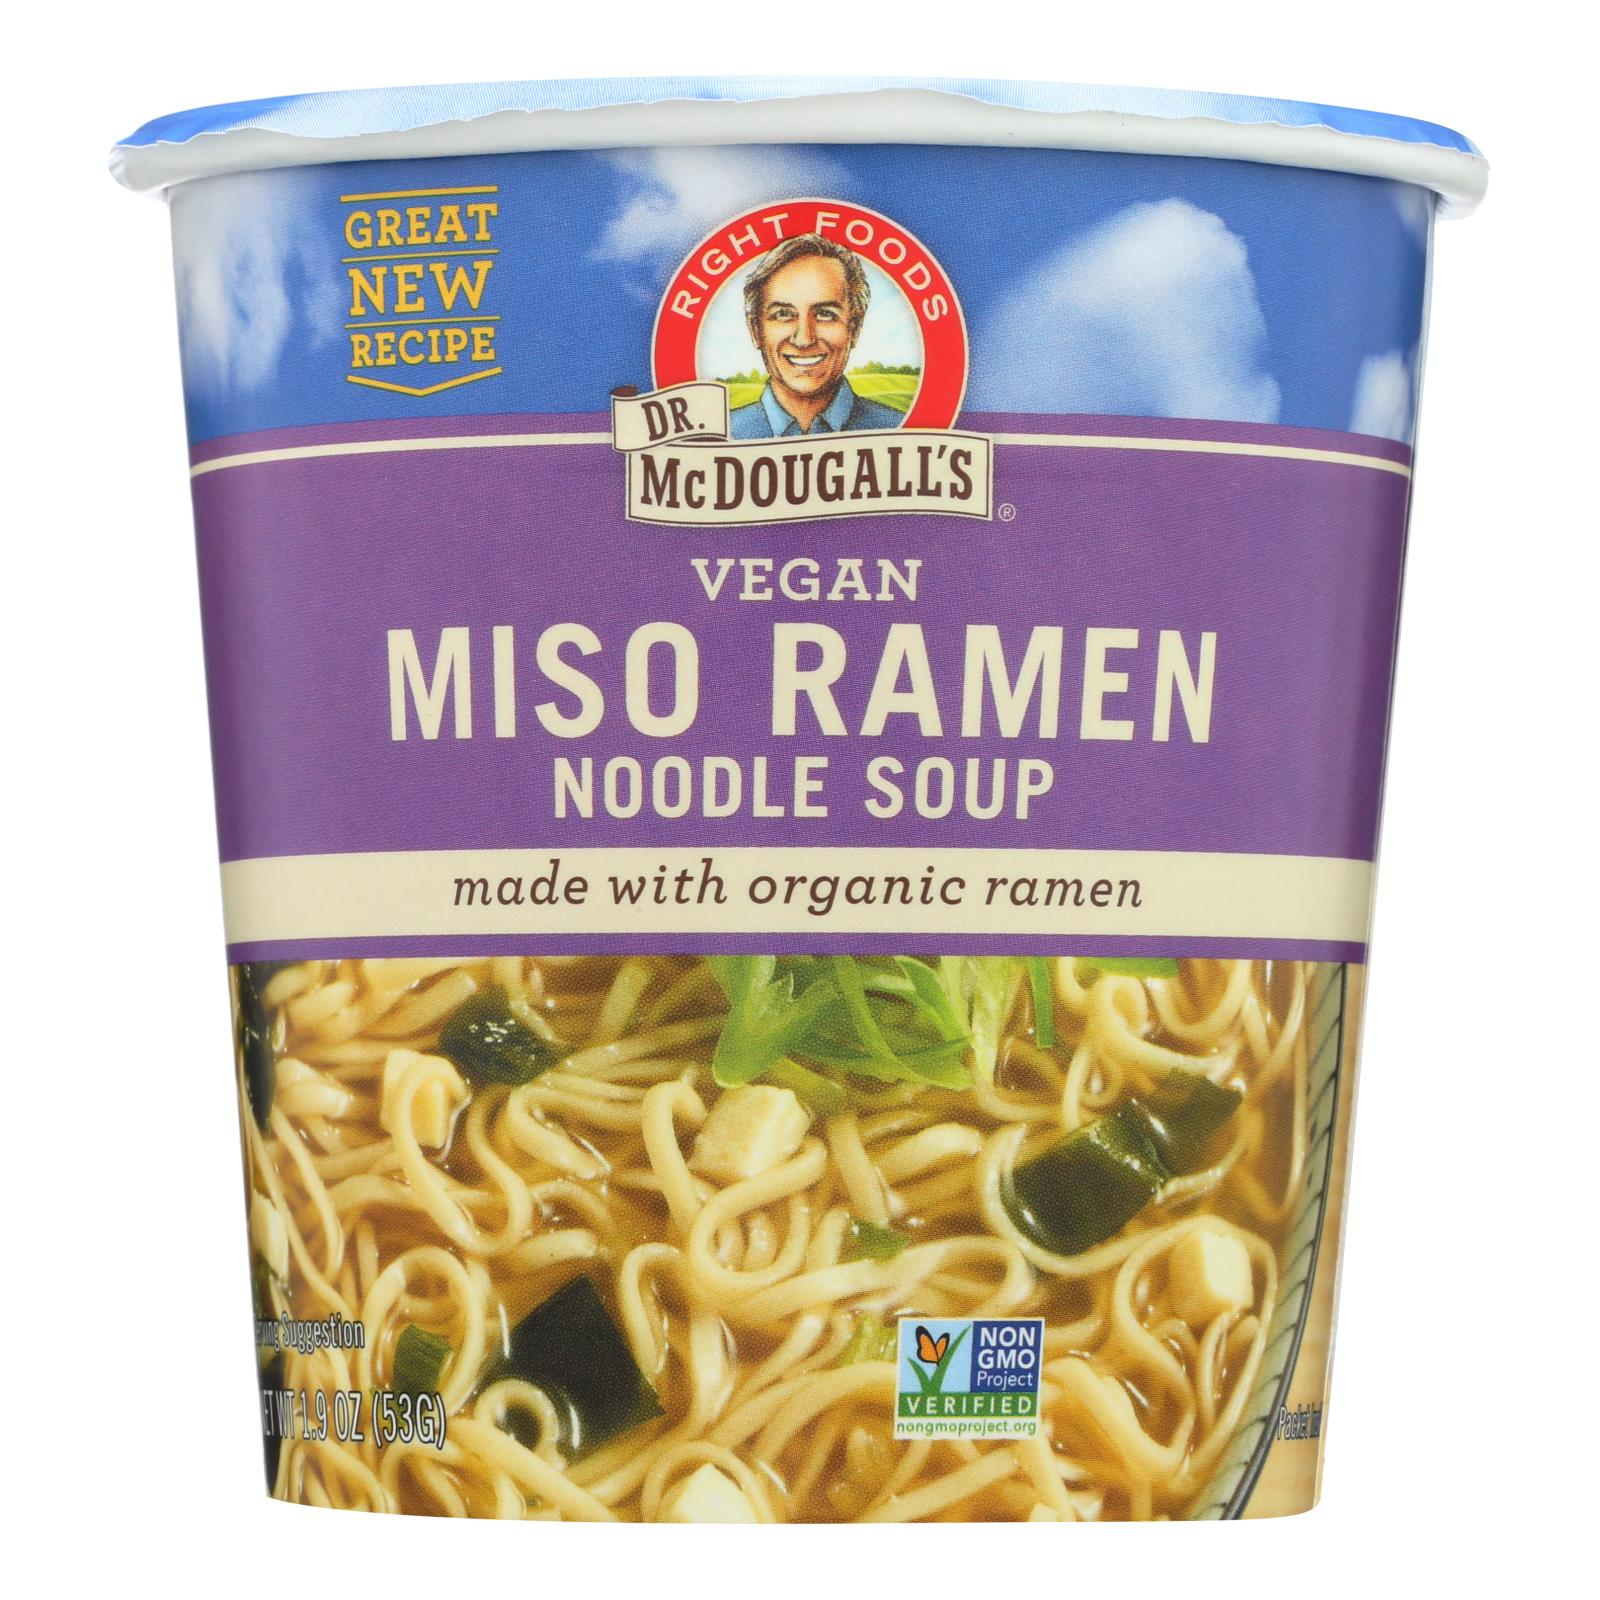 dr. mcdougall's vegan miso ramen soup big cup with noodles